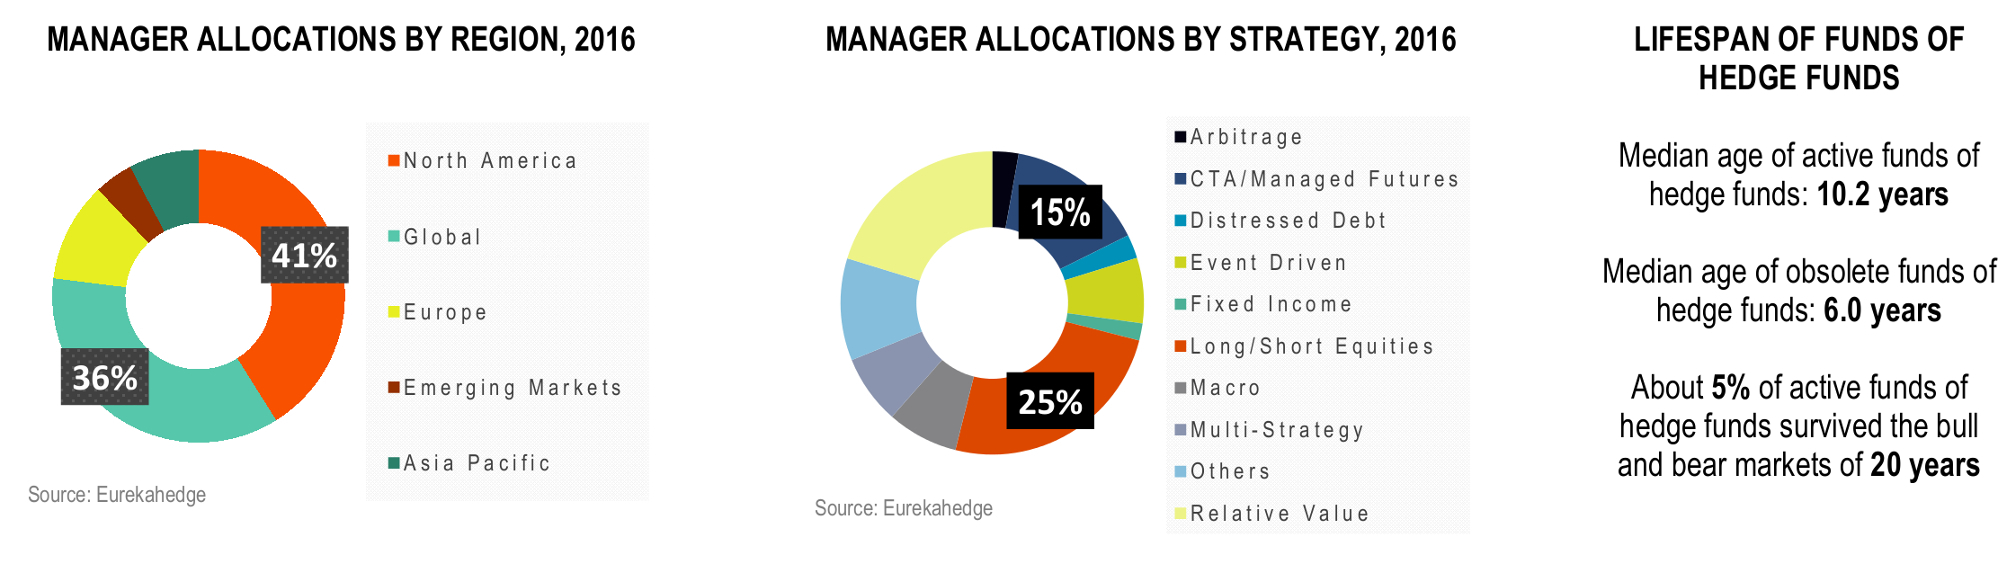 Funds of Hedge Funds Infographic May 2016 - Funds of hedge funds manager allocations by region and strategy, median lifespans